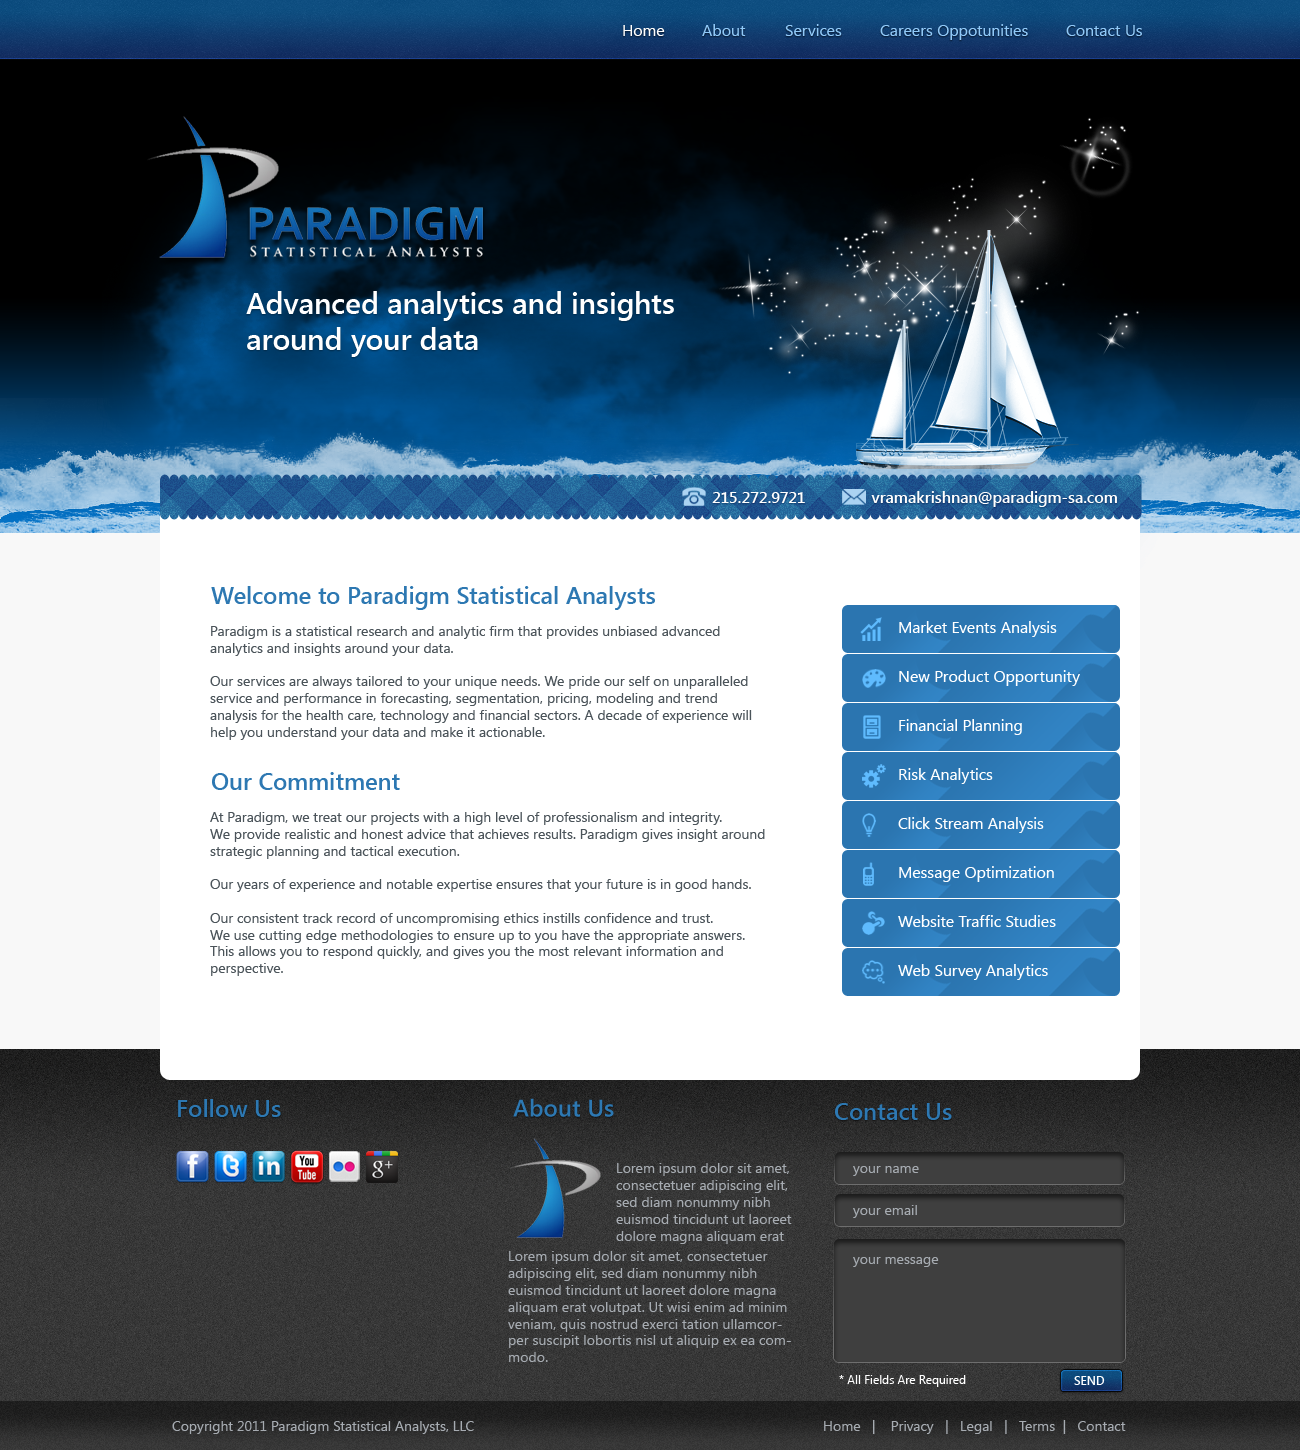 New website design wanted for Paradigm Statistical Analysts